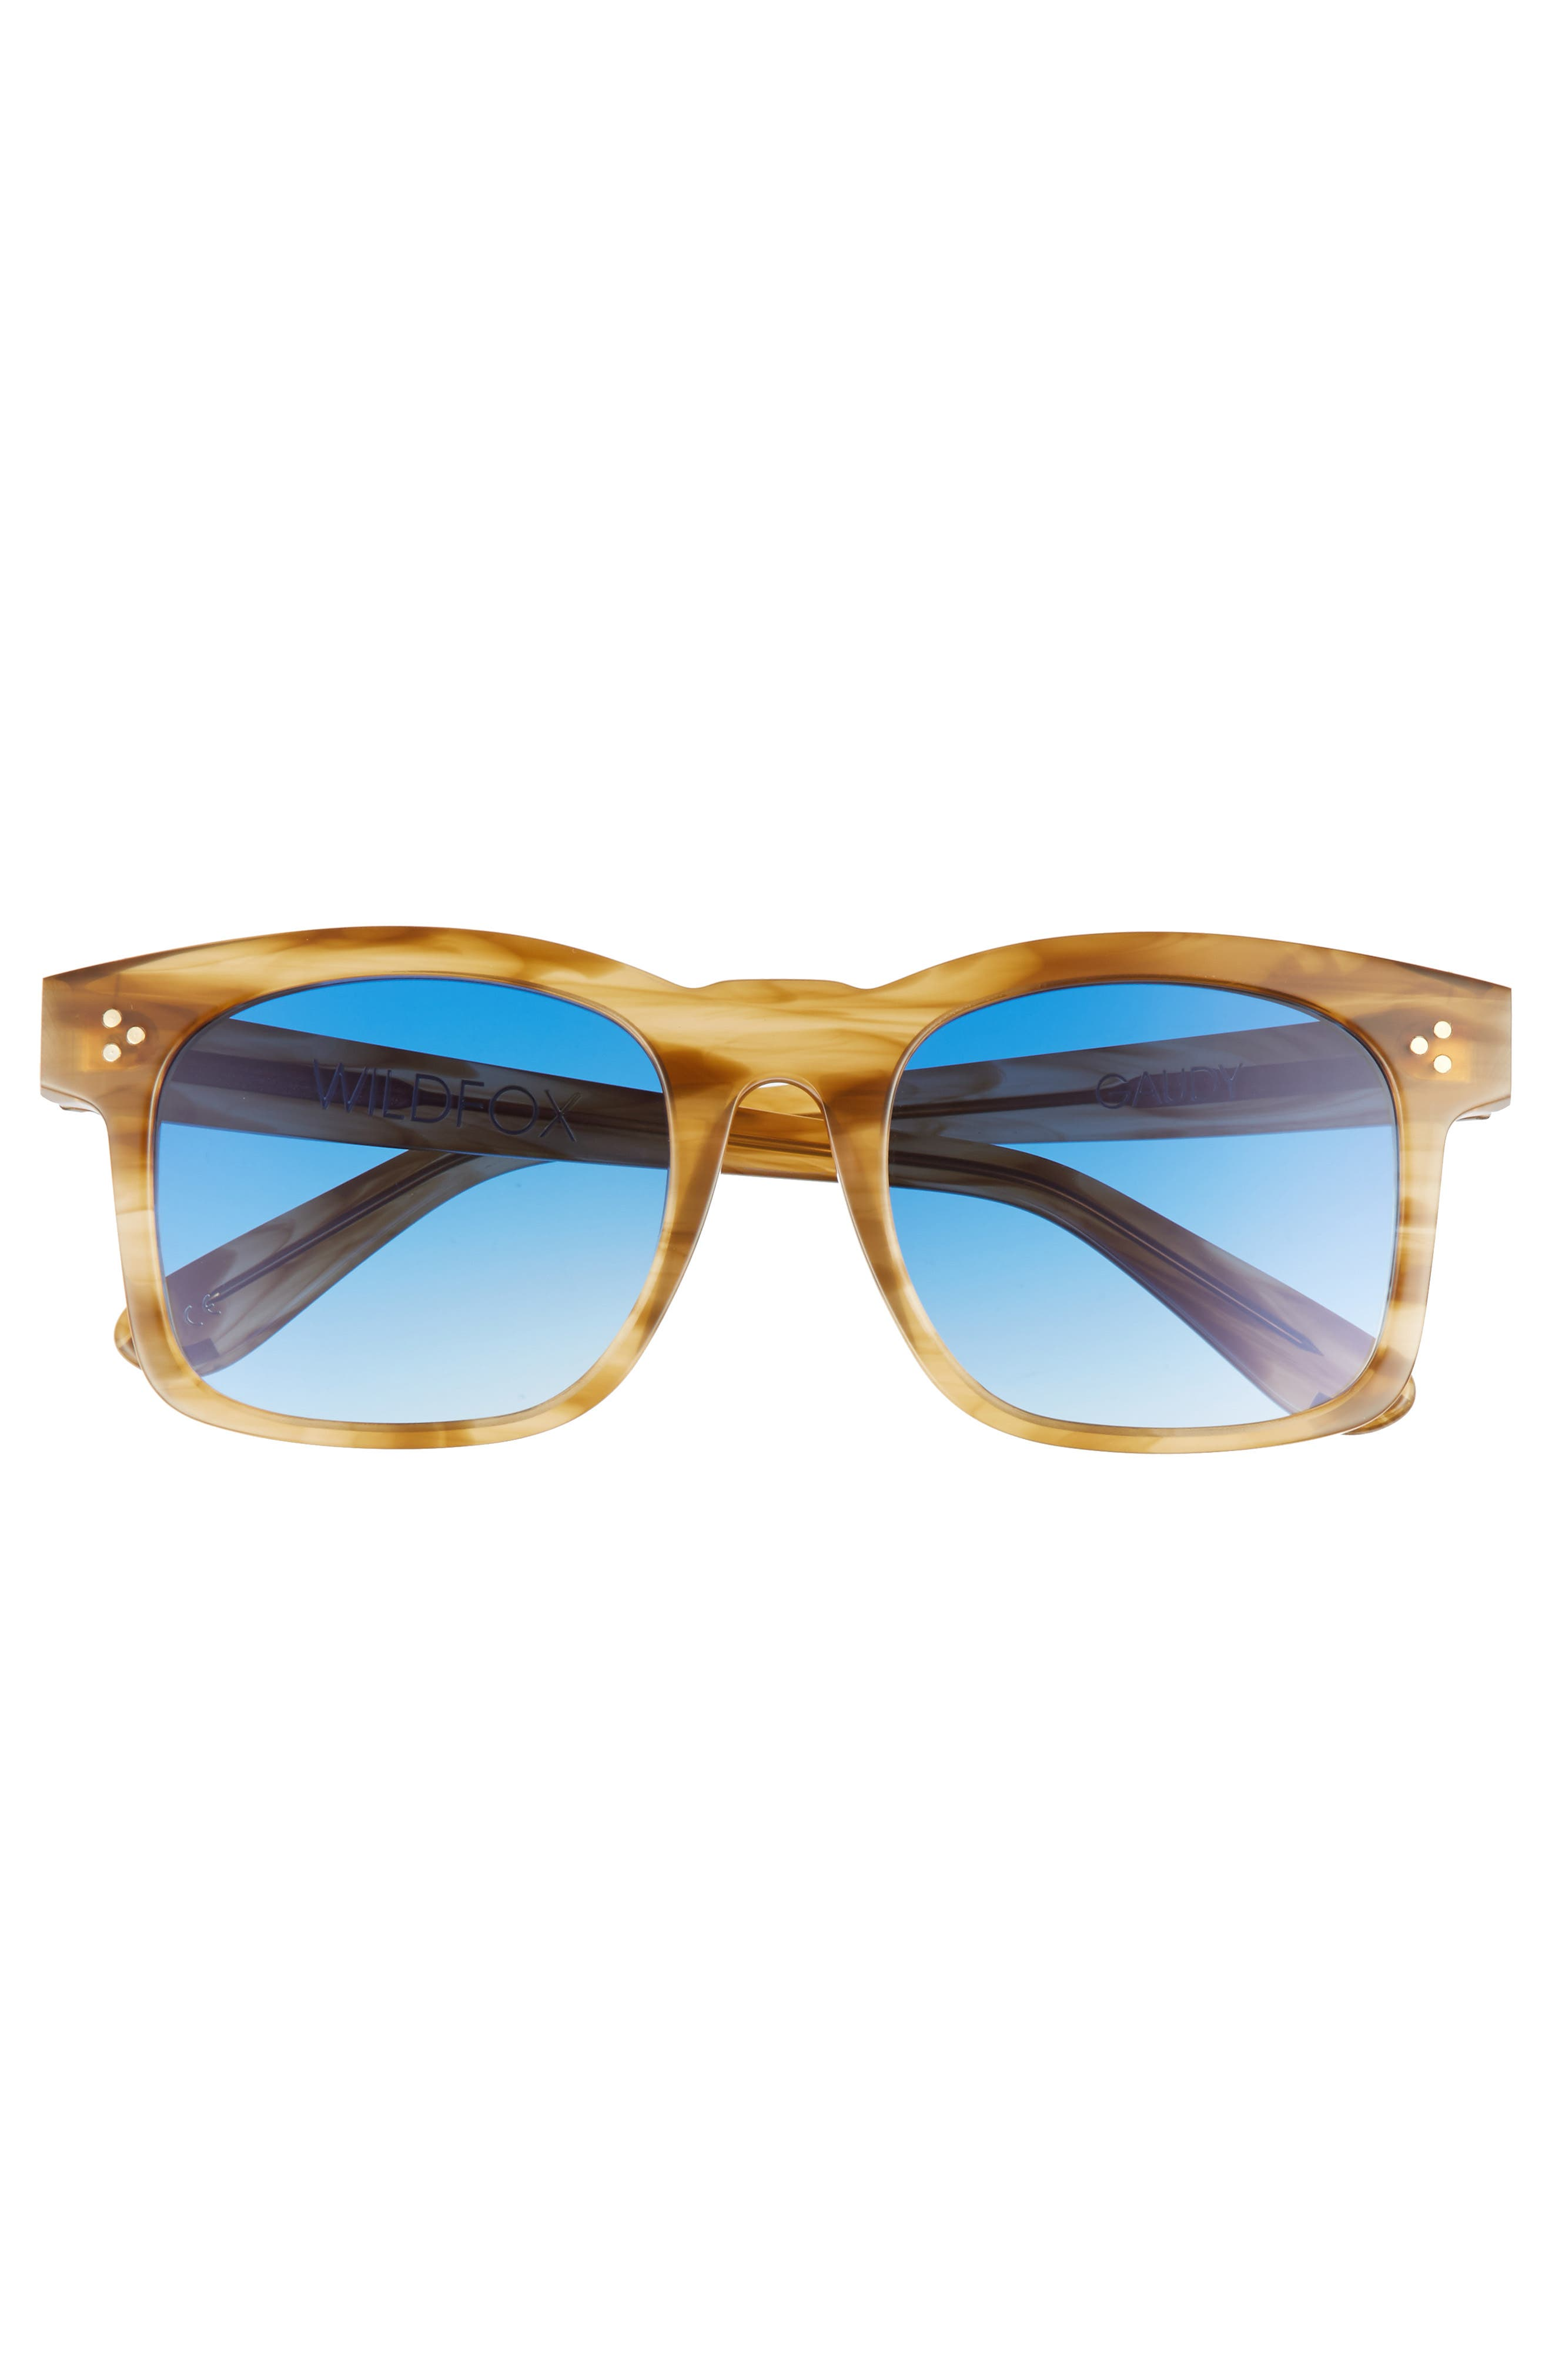 WILDFOX, Gaudy Zero 51mm Flat Square Sunglasses, Alternate thumbnail 3, color, SIERRA TORTOISE